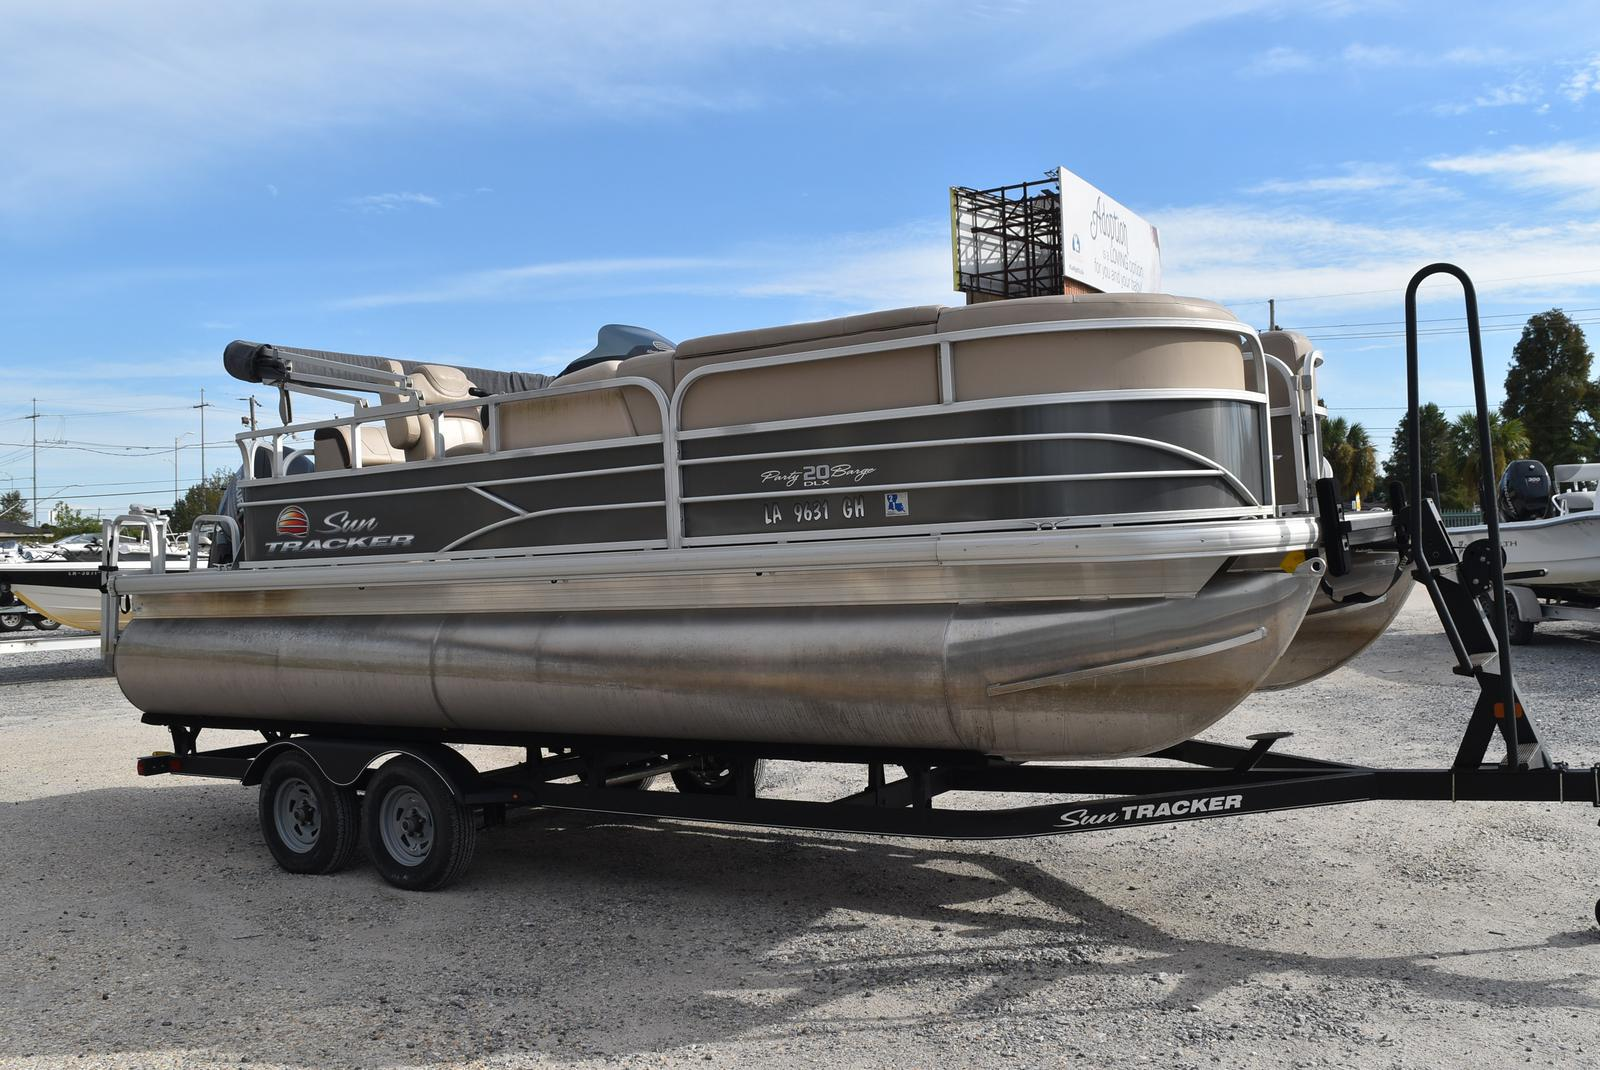 2018 Sun Tracker boat for sale, model of the boat is Party Barge 20 DLX, 90CT & Image # 6 of 14